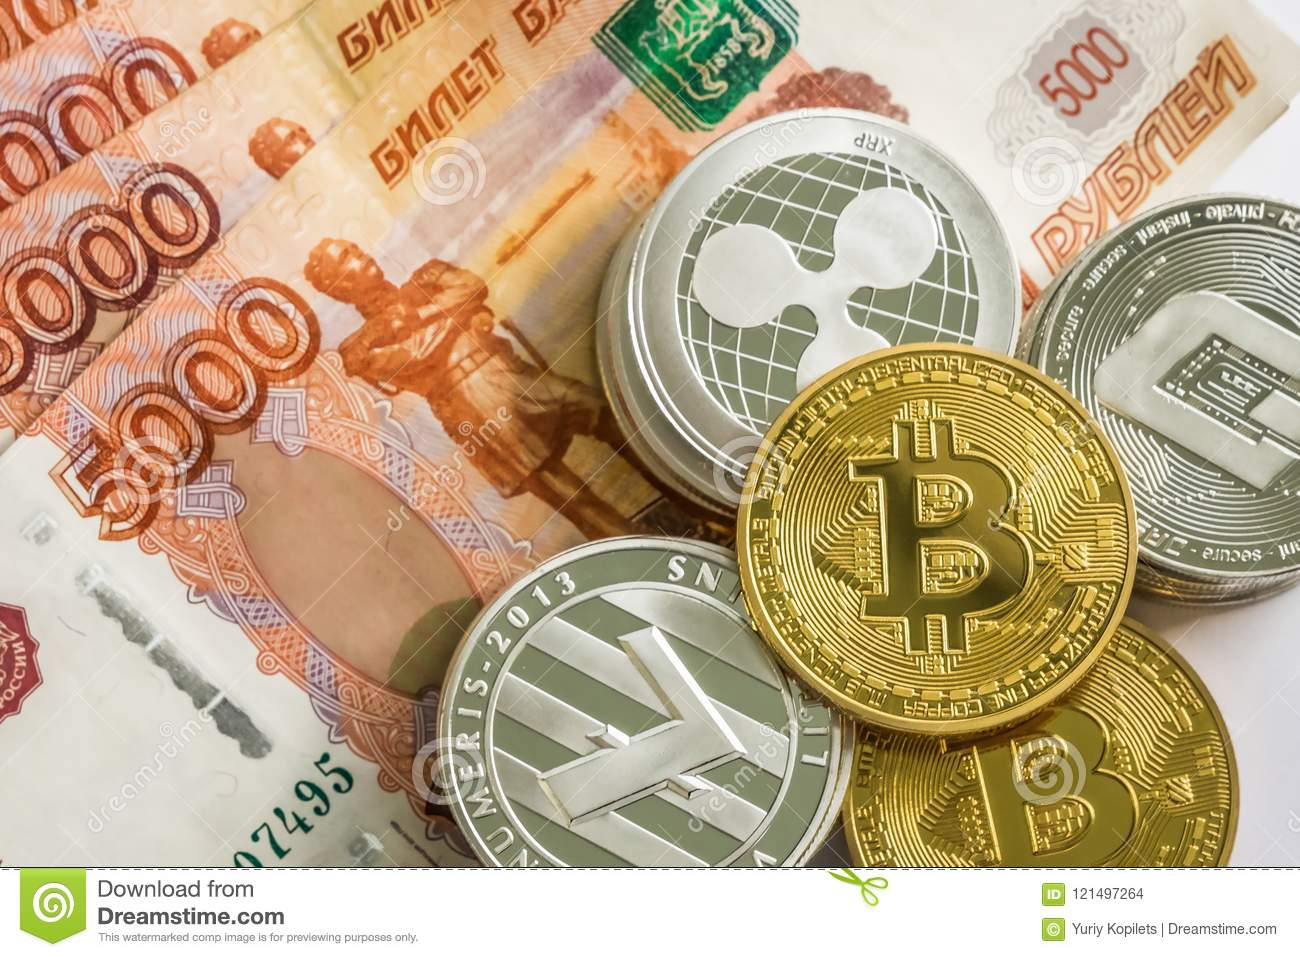 How to exchange Bitcoin for rubles 44